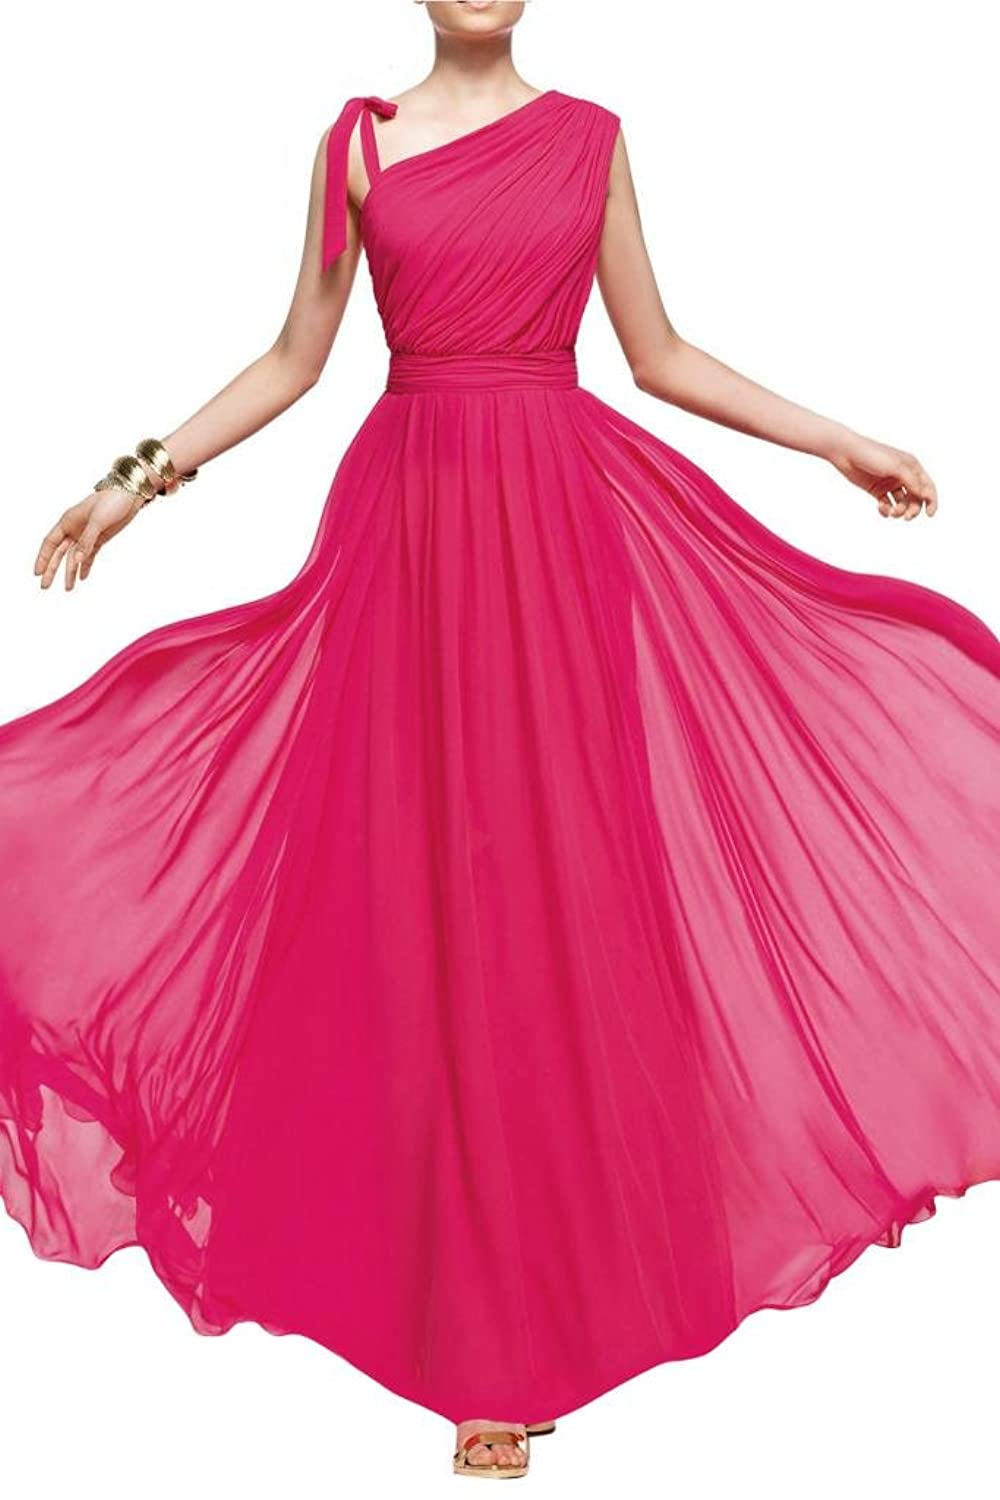 Gorgeous Bride New Maxi Chiffon Evening Dresses Bridesmaid Dresses Elegant